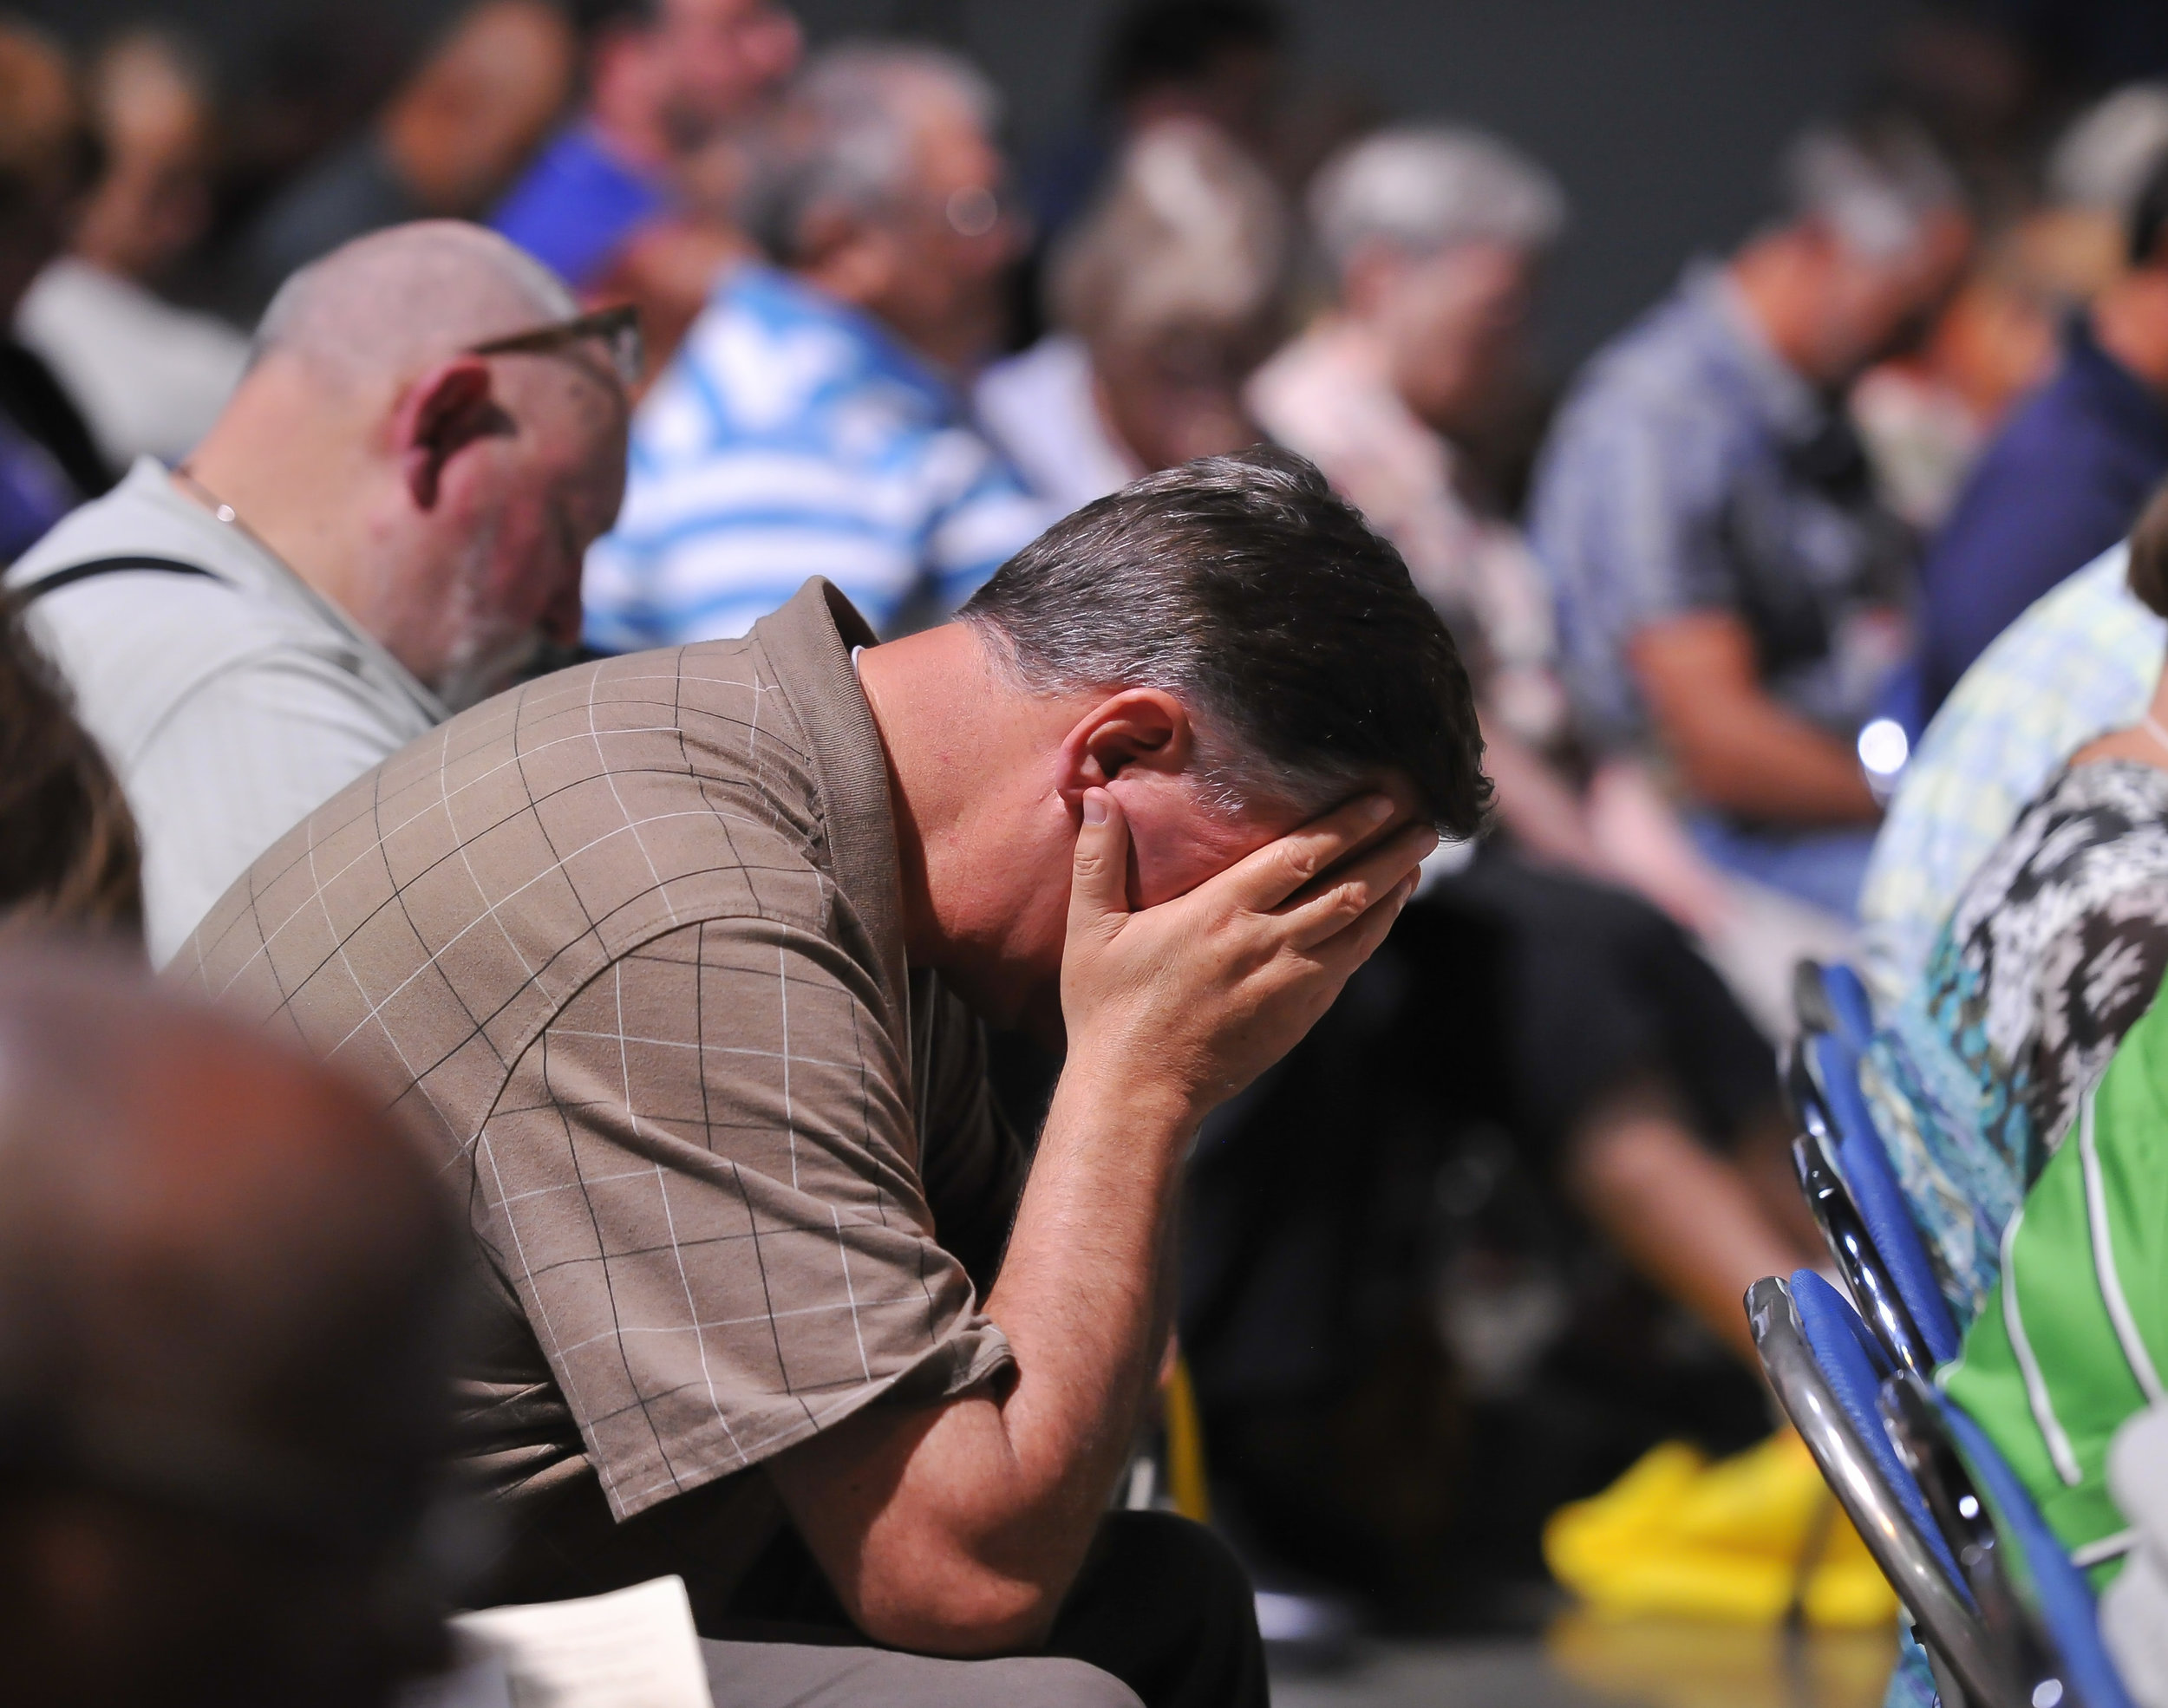 Attendees pray at the Friday Plenary at the 2017 INUMC Annual Conference in Indianapolis.